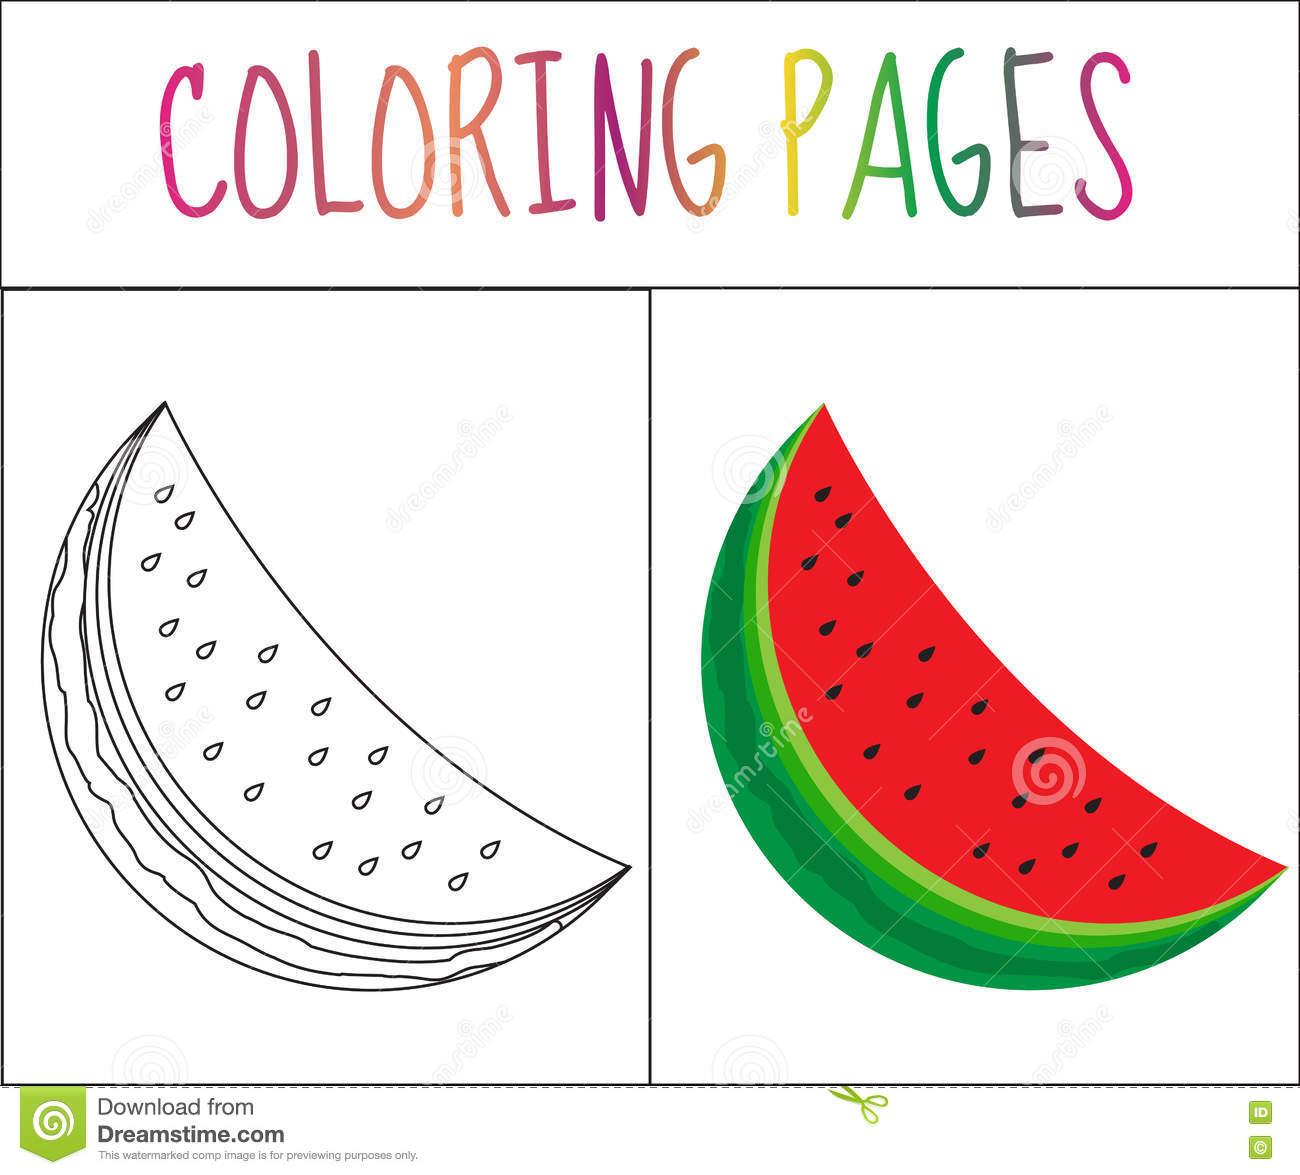 coloring book page watermelon sketch and color version coloring